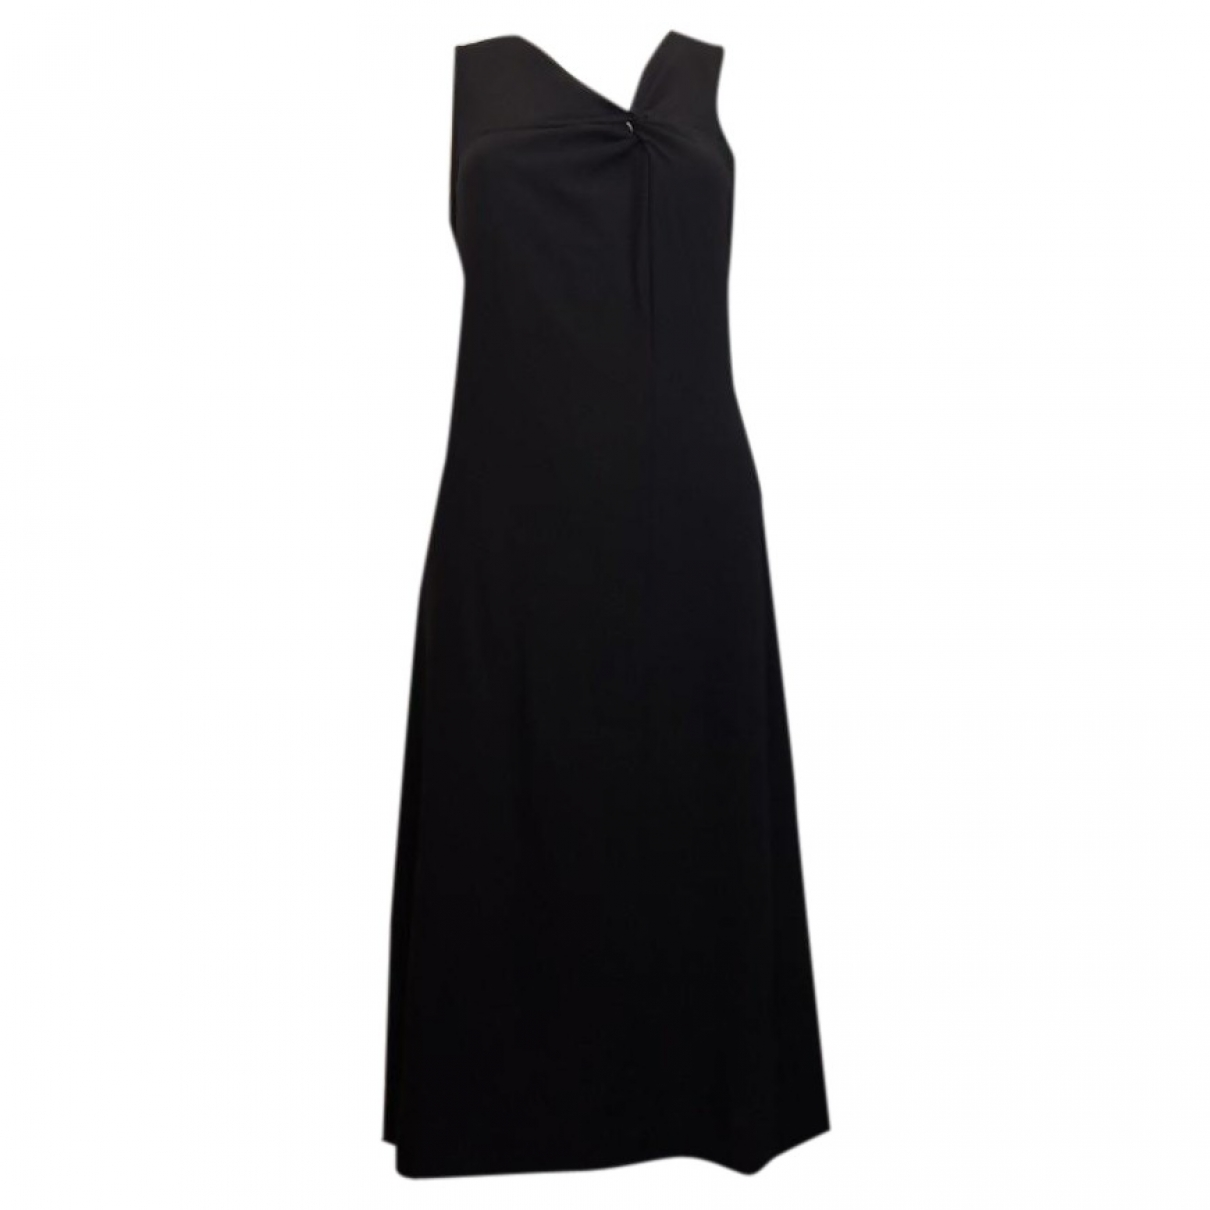 Emporio Armani \N Black Cotton dress for Women 42 IT